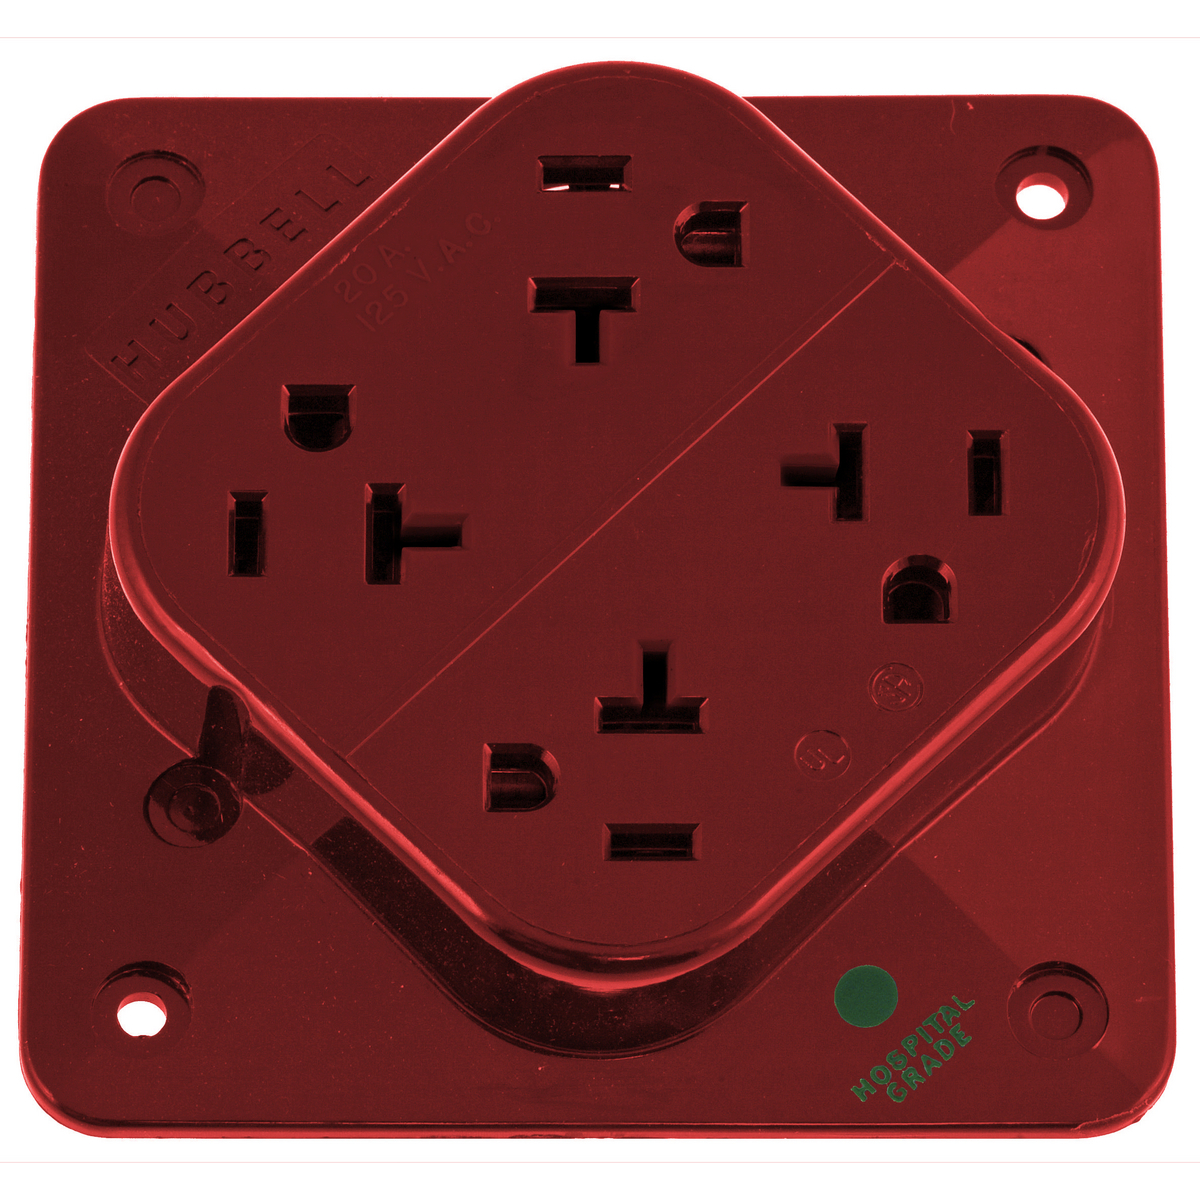 Hubbell HBL420HR 20 Amp 125 Volt 2-Pole 3-Wire NEMA 5-20R Red Straight Blade Receptacle